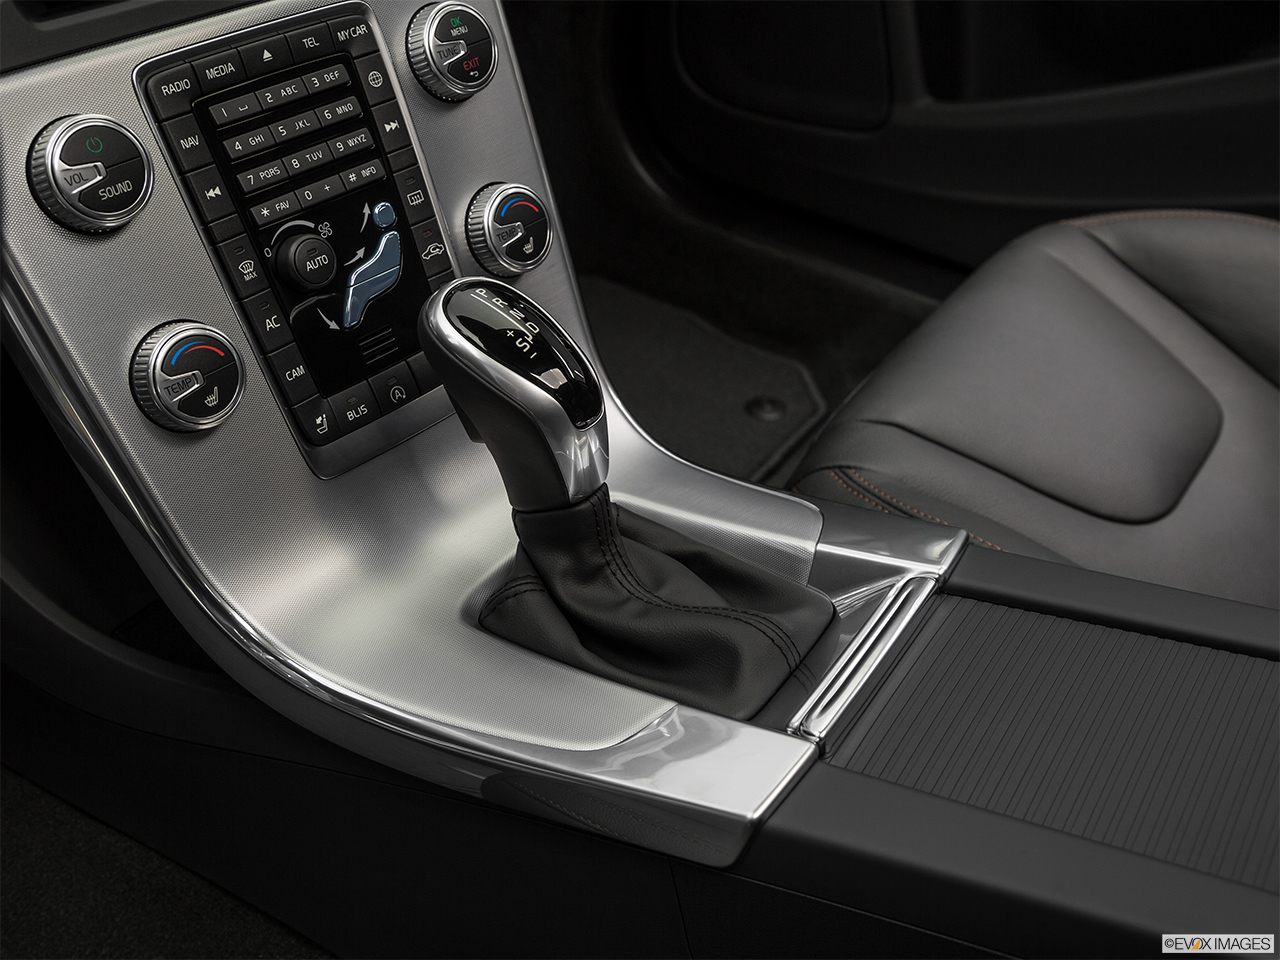 2018 Volvo V60 Cross Country T5 AWD Gear shifter/center console.